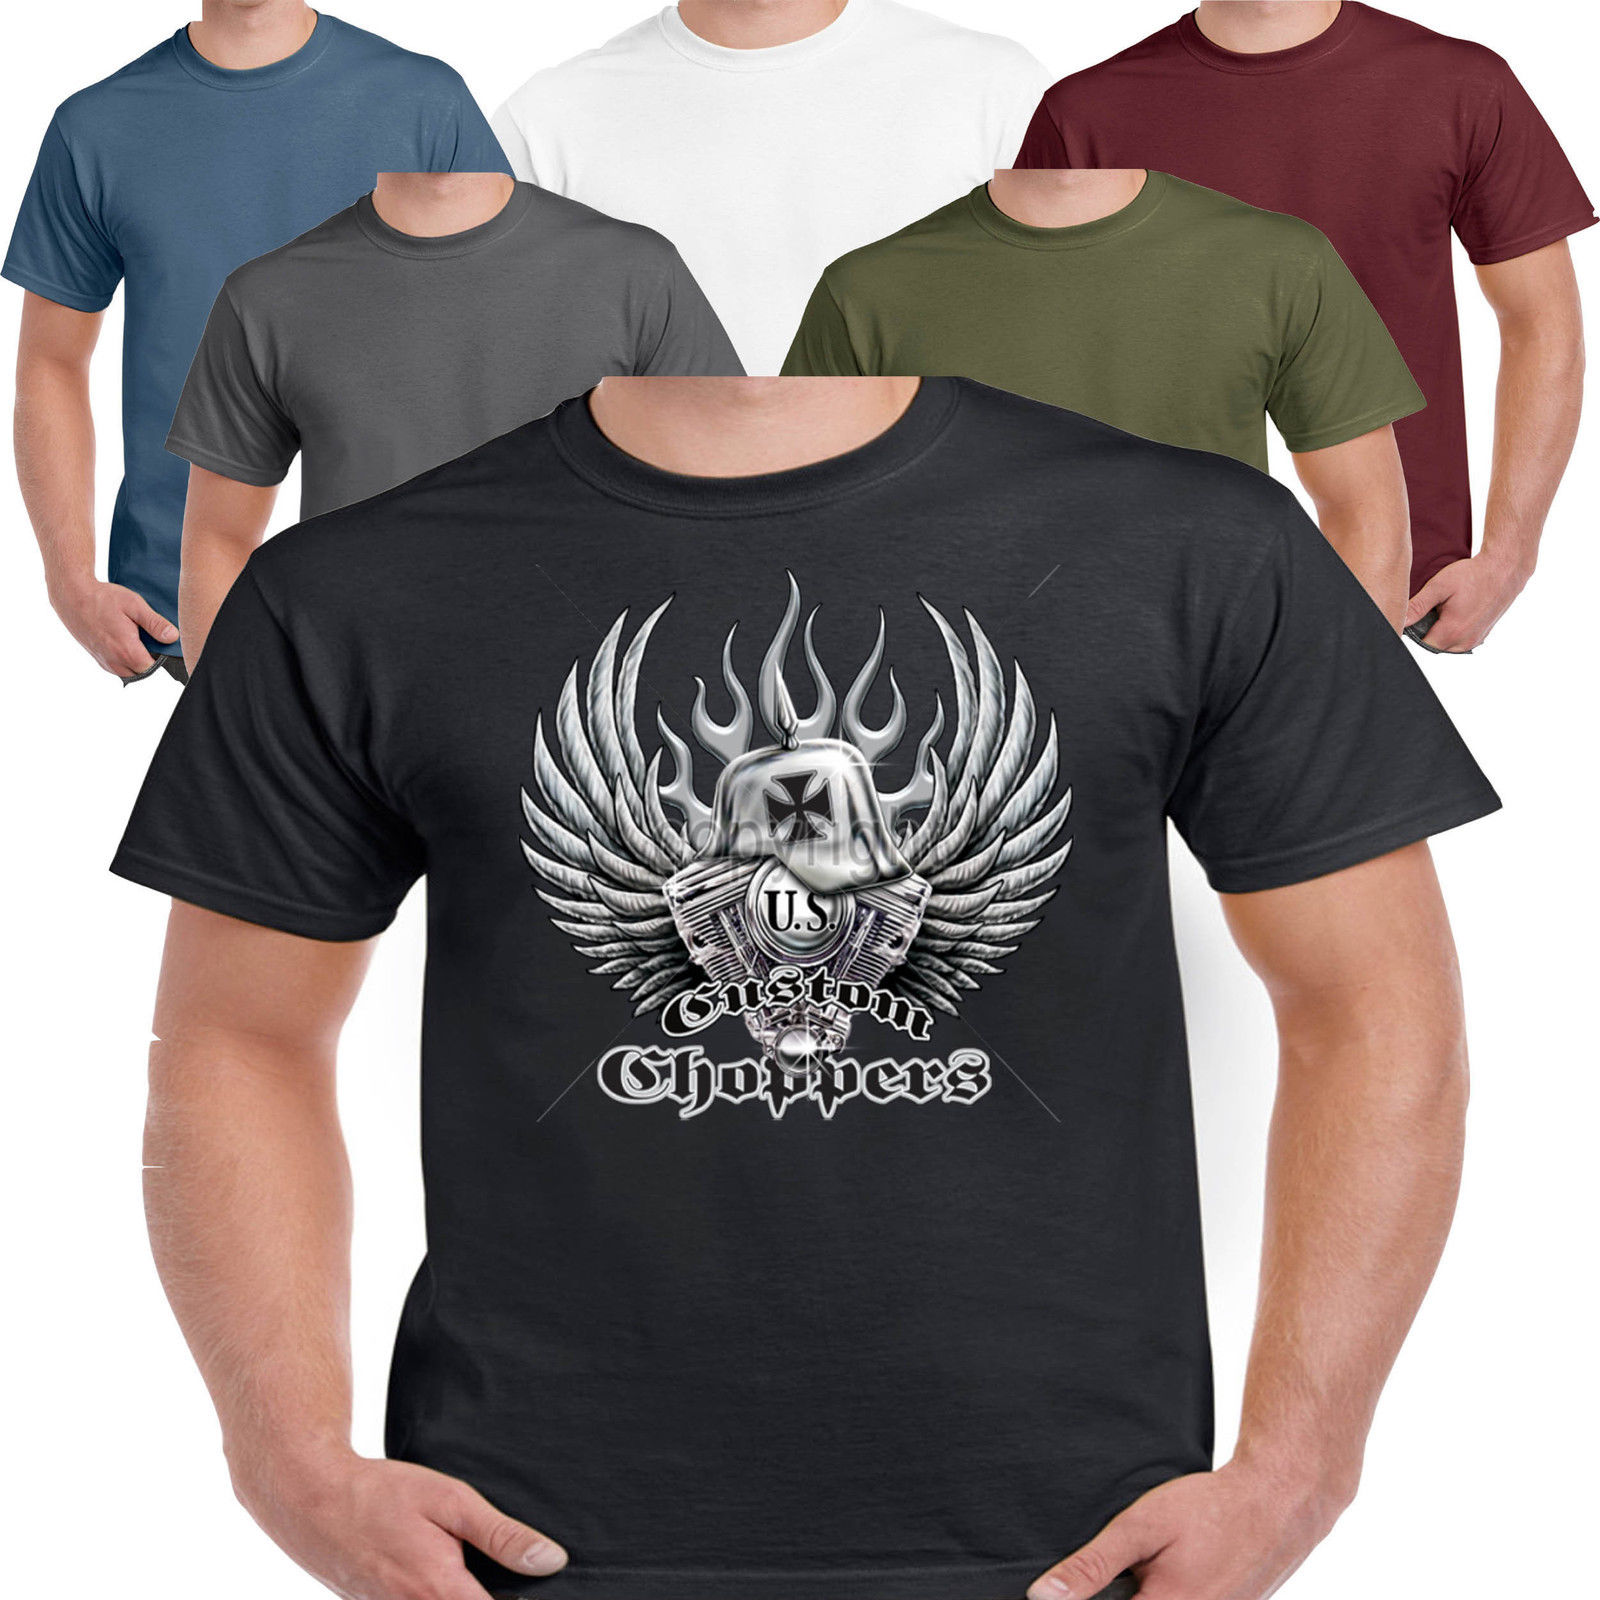 Mens biker t shirt custom bike vintage classic motorcycle for Custom t shirts and hoodies